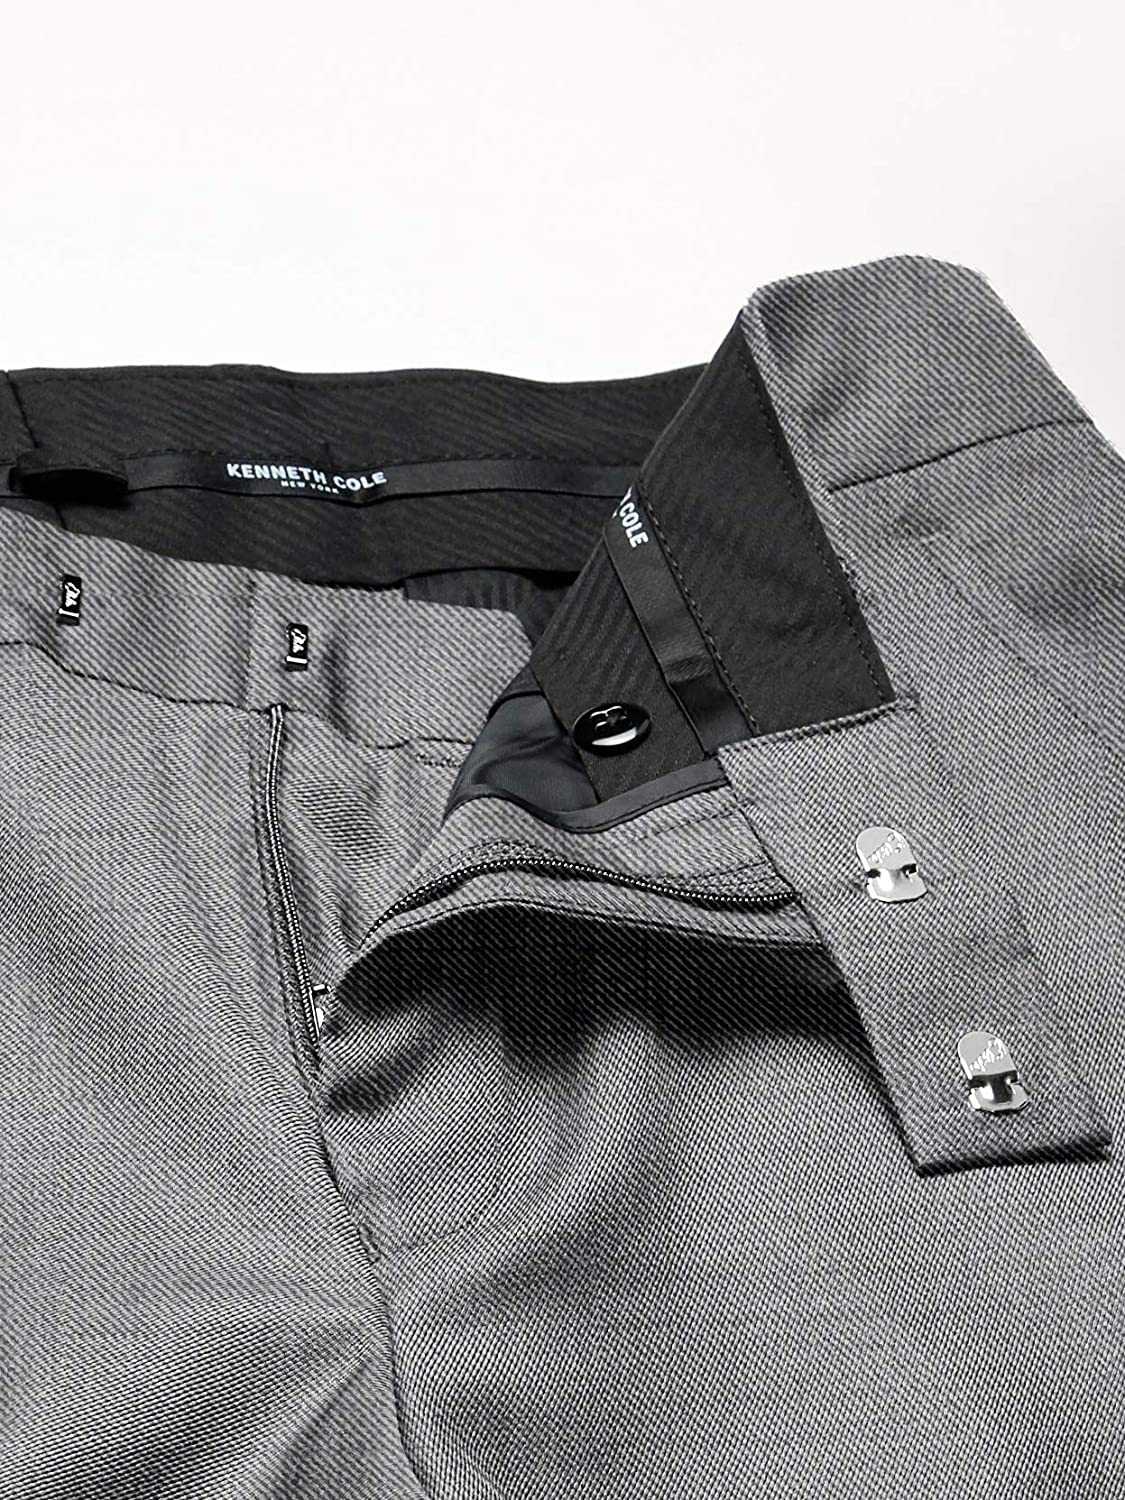 Kenneth Cole New York Mens Performance Wool Suit Separates-Custom Jacket and Pant Selection